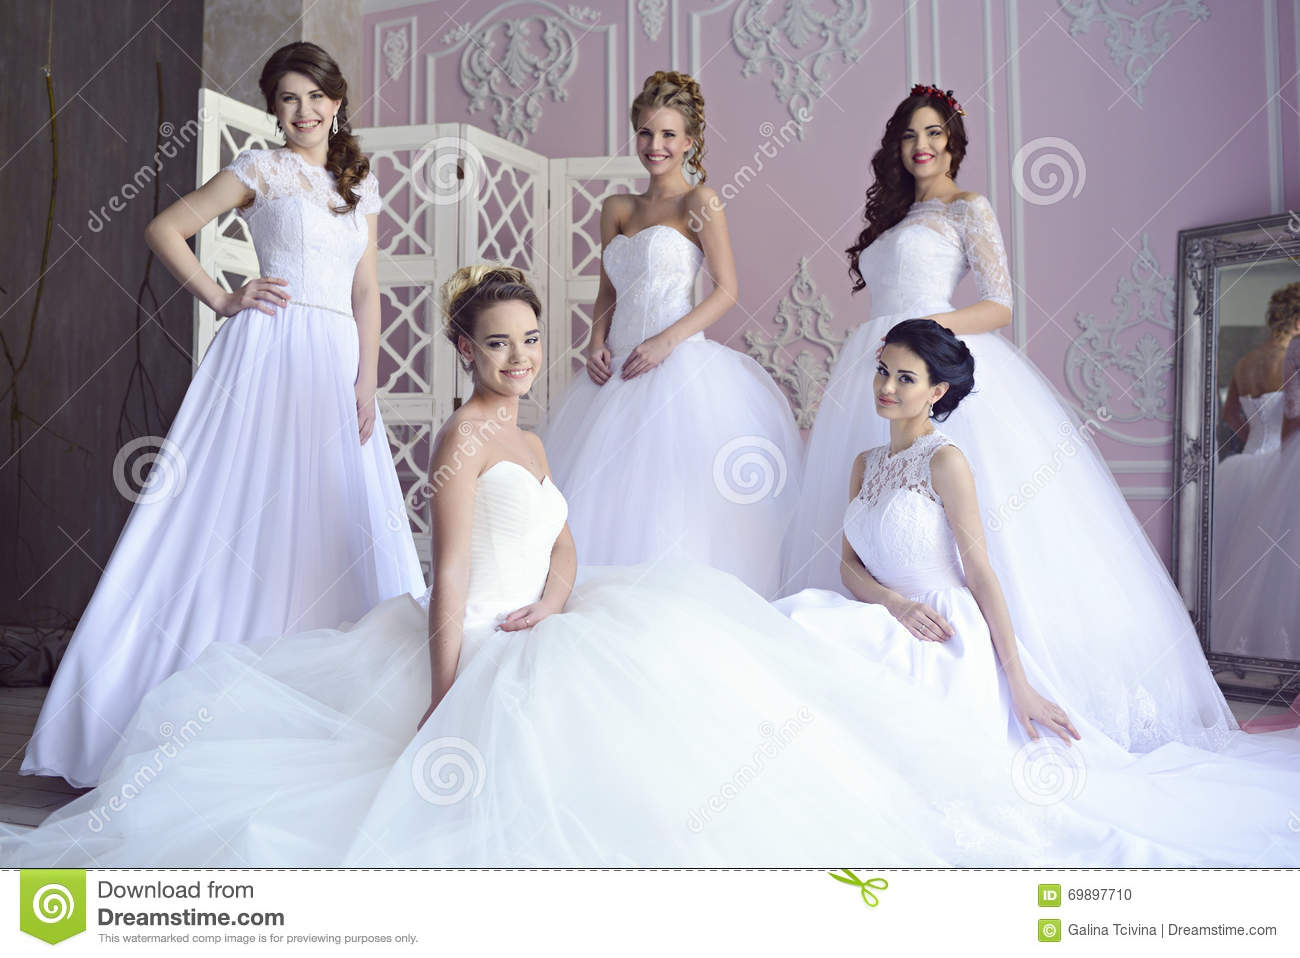 Beauty brides in bridal gowns indoors stock photo image for Wedding dresses house of brides